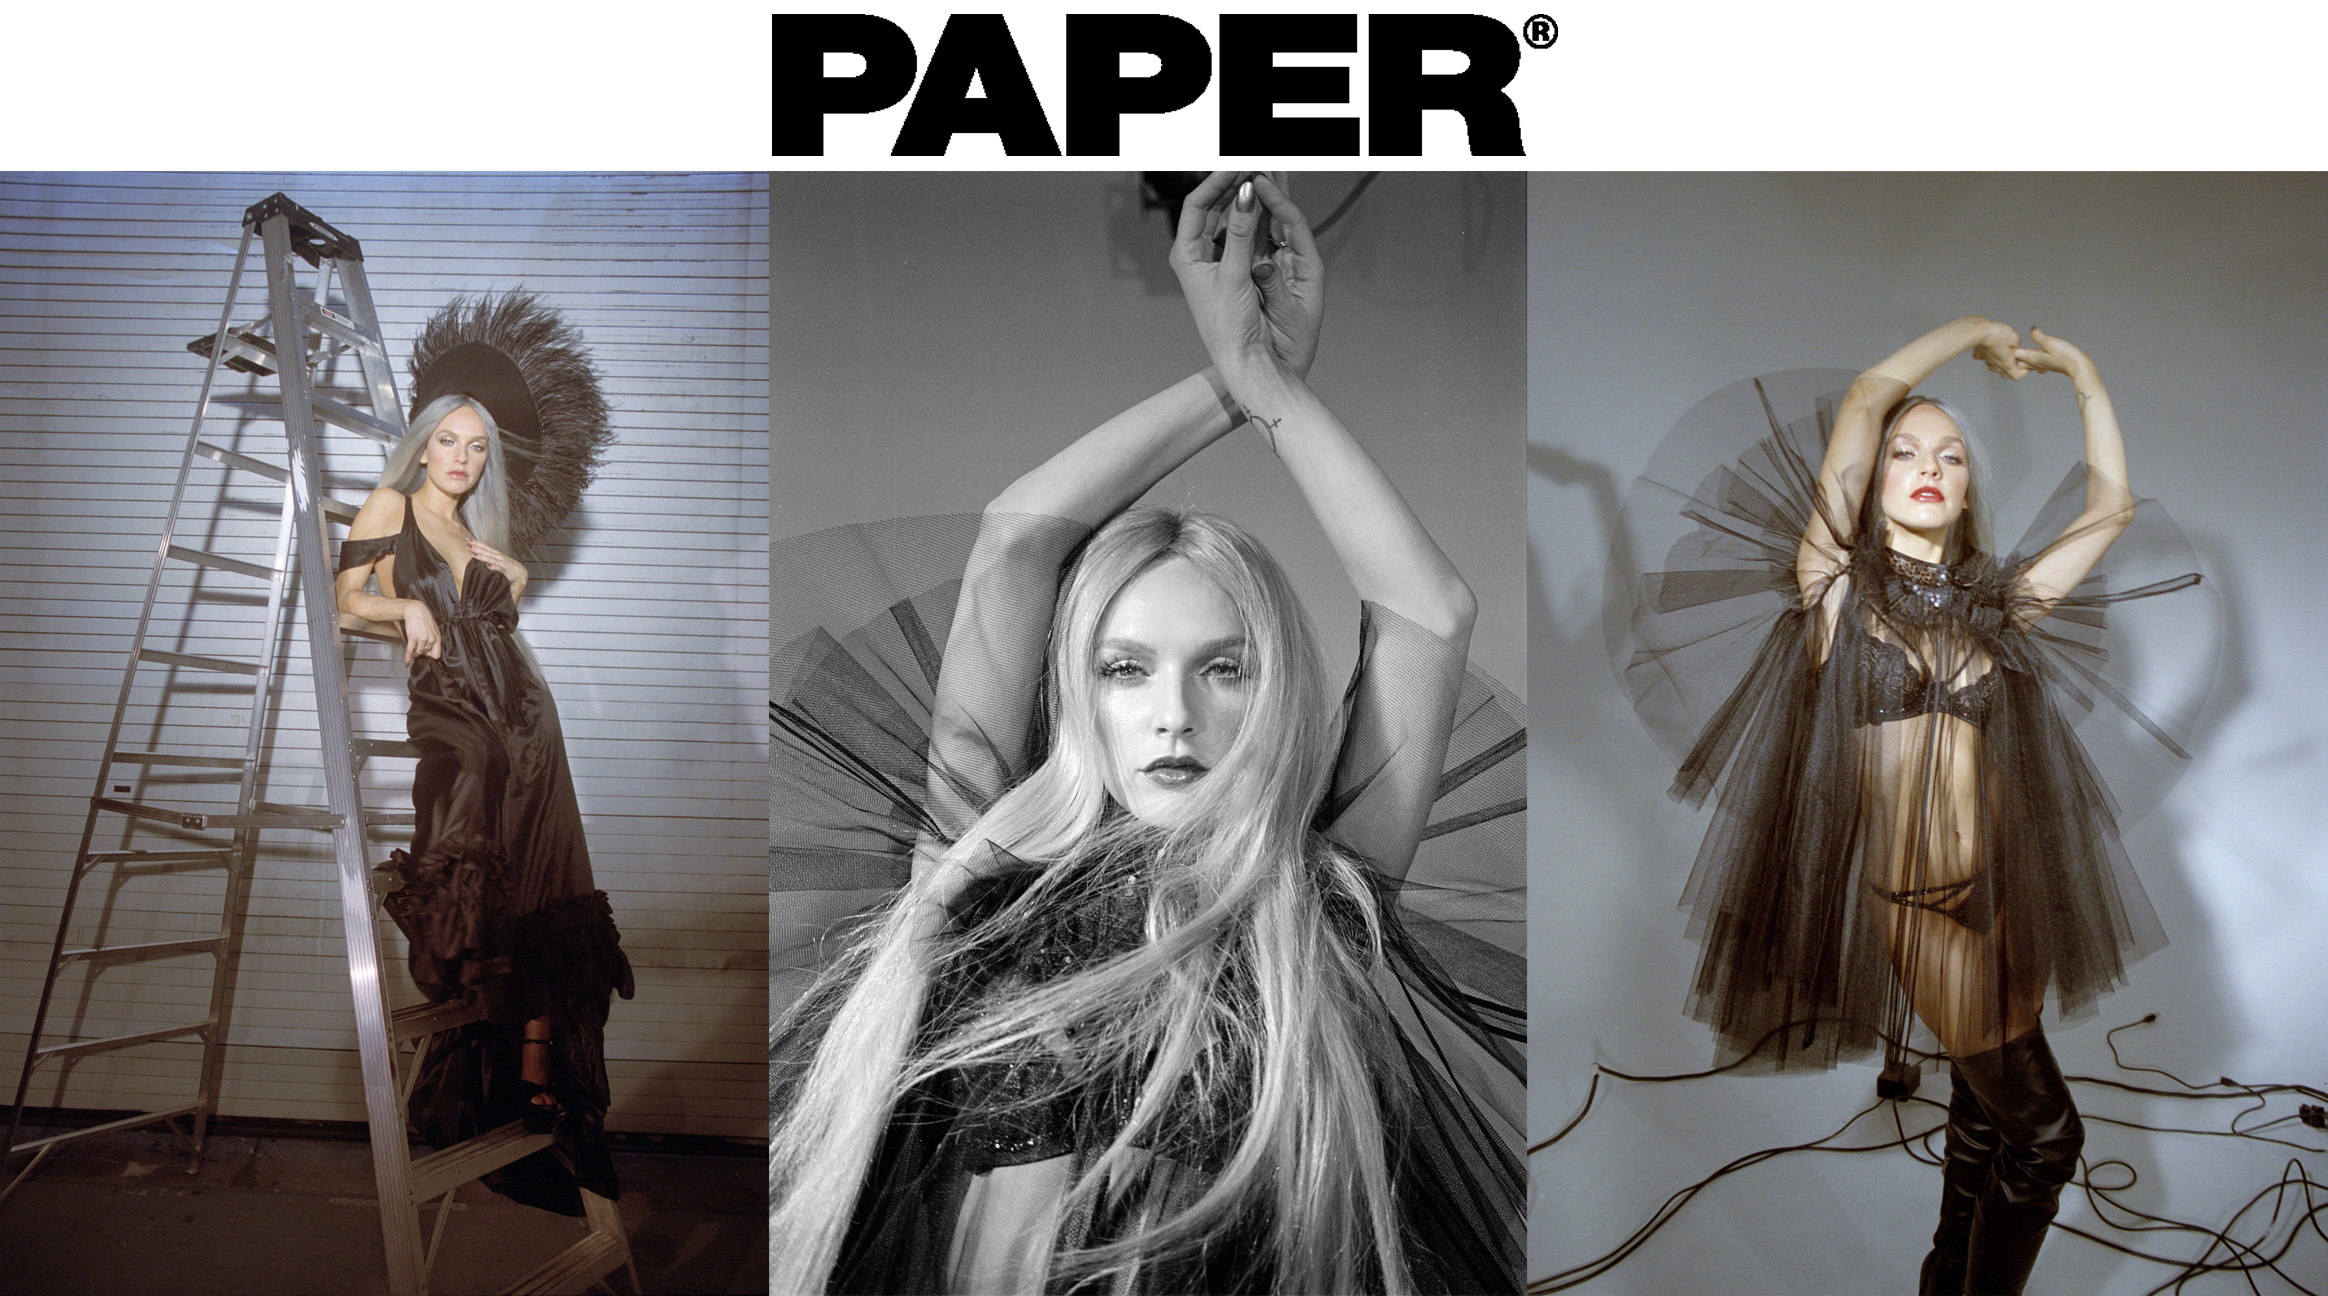 Zolita Paper Magazine June 2018 Pride Month  Photography: Paige Maccready    Styling: Zac Weiss and Jarrett Edward    Makeup: Tony Tulve    Hair: Will Schaedler    silk ruffle bustle gown shoulder drape sheer black tulle and sequin angel dress lingerie sexy      Kelsey Randall    dreamy demi-couture womenswear crafted in nyc    for future icons, rock stars, and goddesses    made-to-measure bespoke handcrafted custom bridal    made in NYC brooklyn bushwick new york city    sustainable ethical diverse boss lady werk